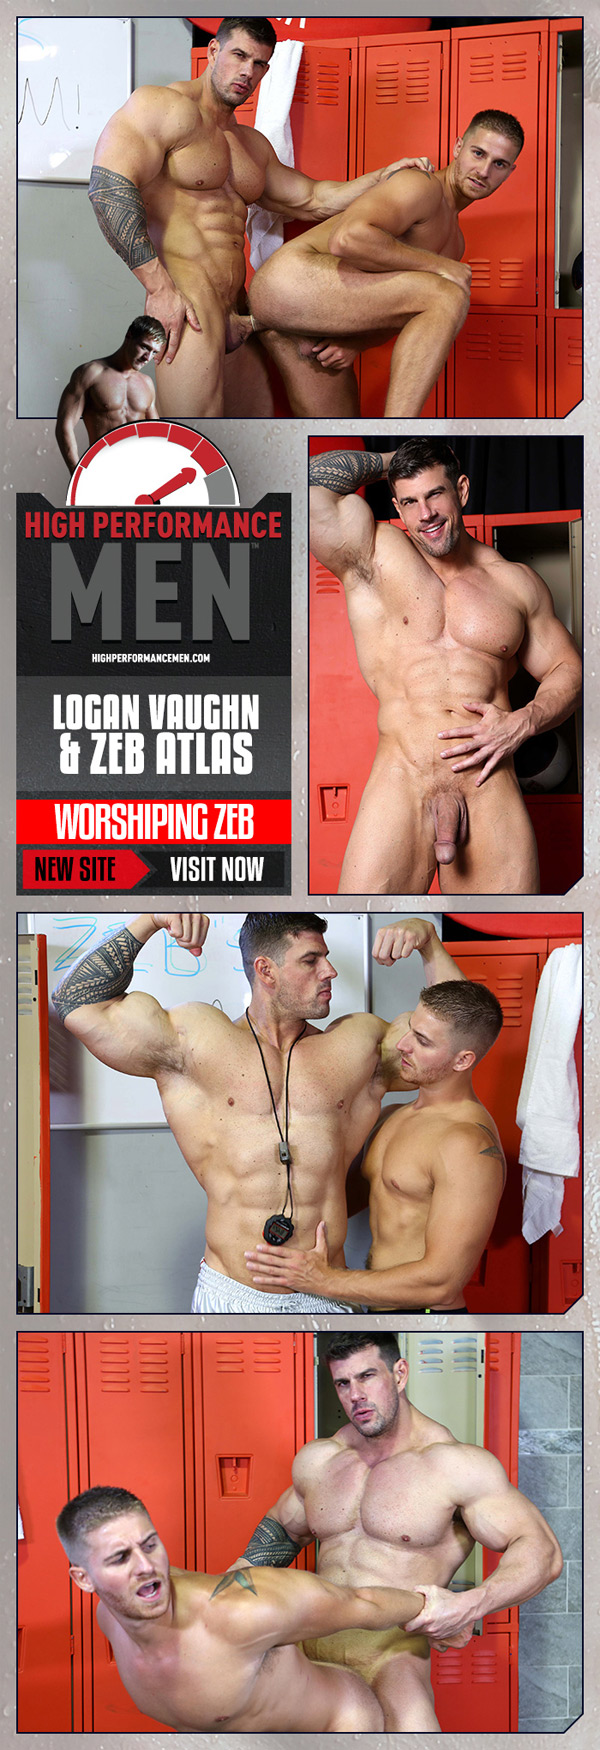 Worshiping Zeb (Logan Vaughn & Zeb Atlas) at High Performance Men